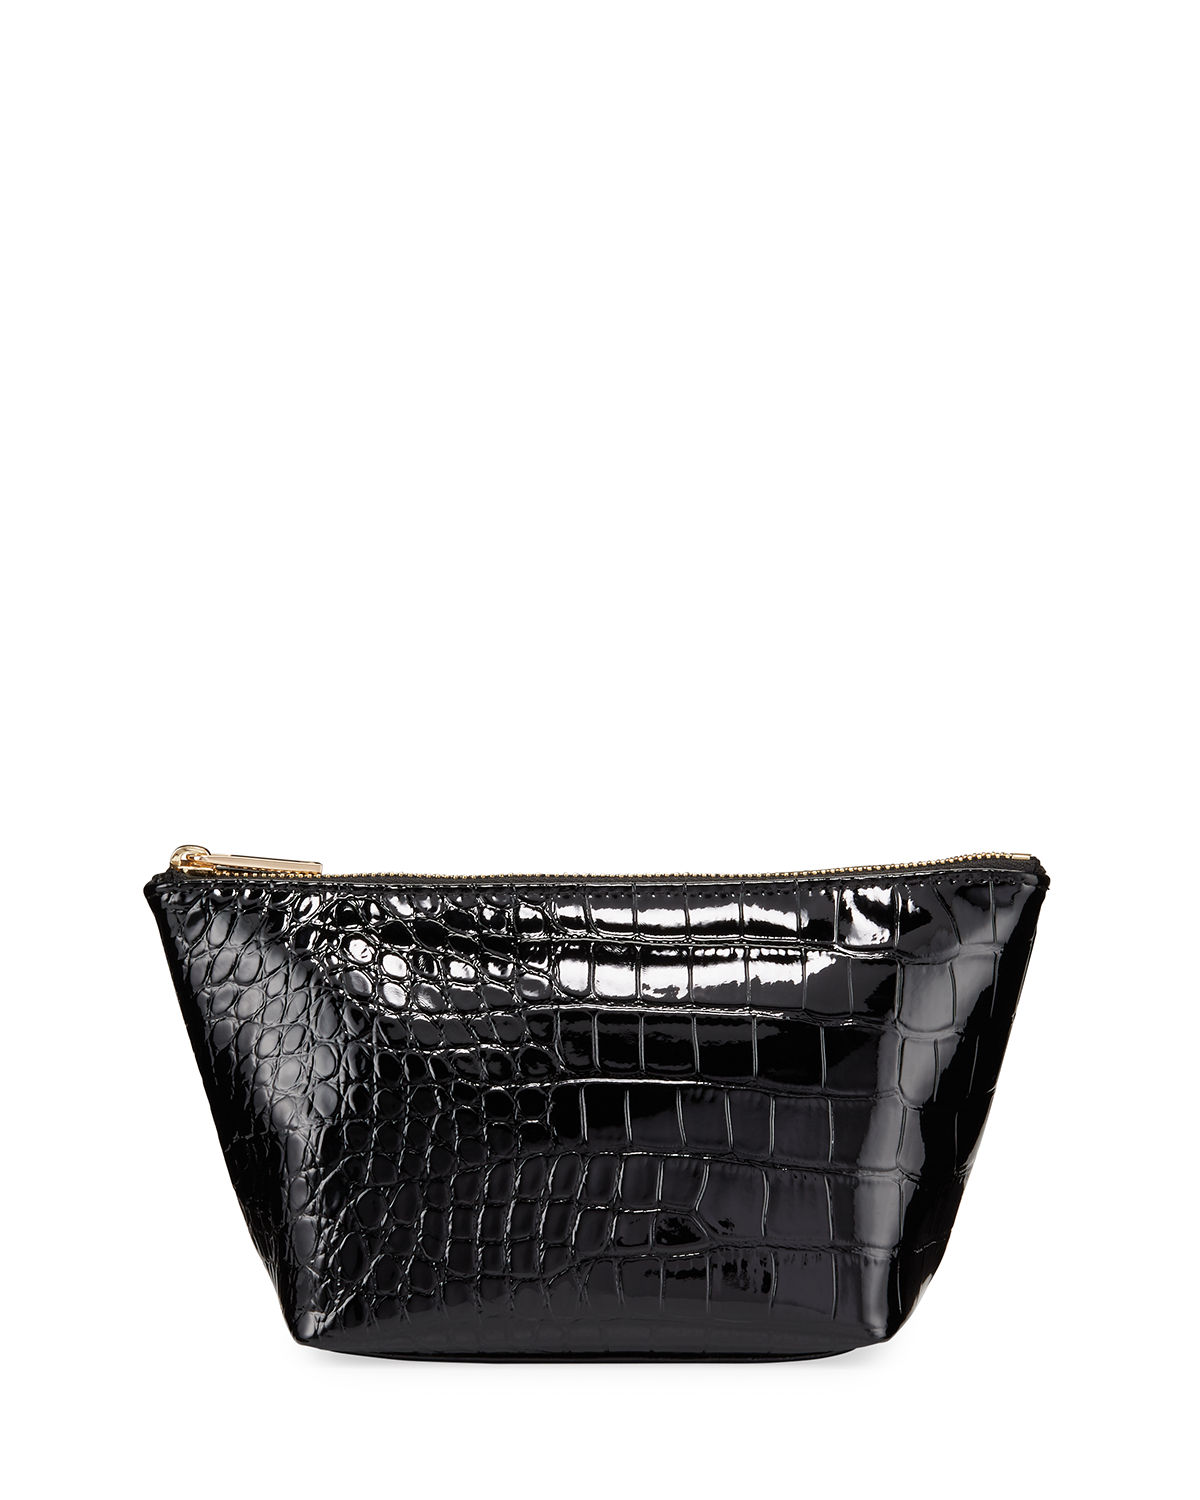 Neiman Marcus Accessories CROC-EMBOSSED COSMETIC ZIP BAG